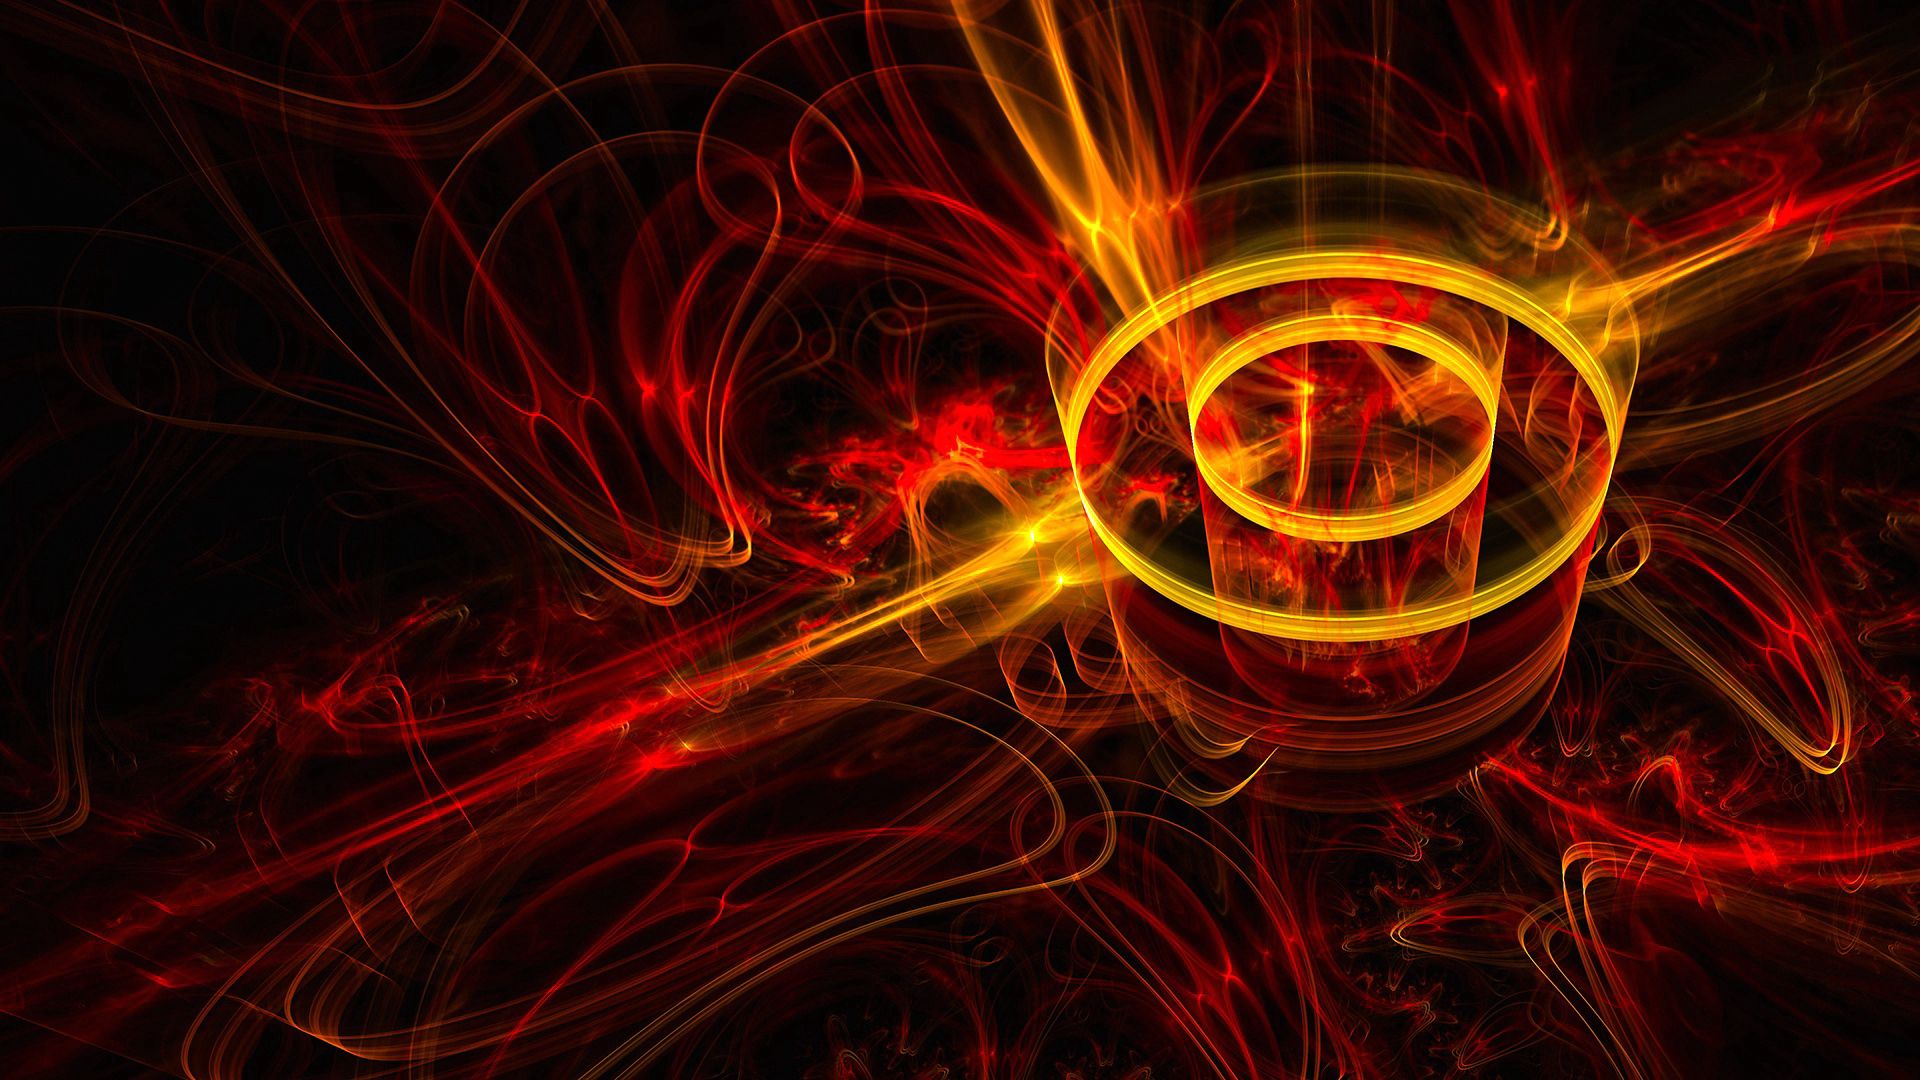 123979 download wallpaper Abstract, Fractal, Beams, Rays, Shine, Light screensavers and pictures for free